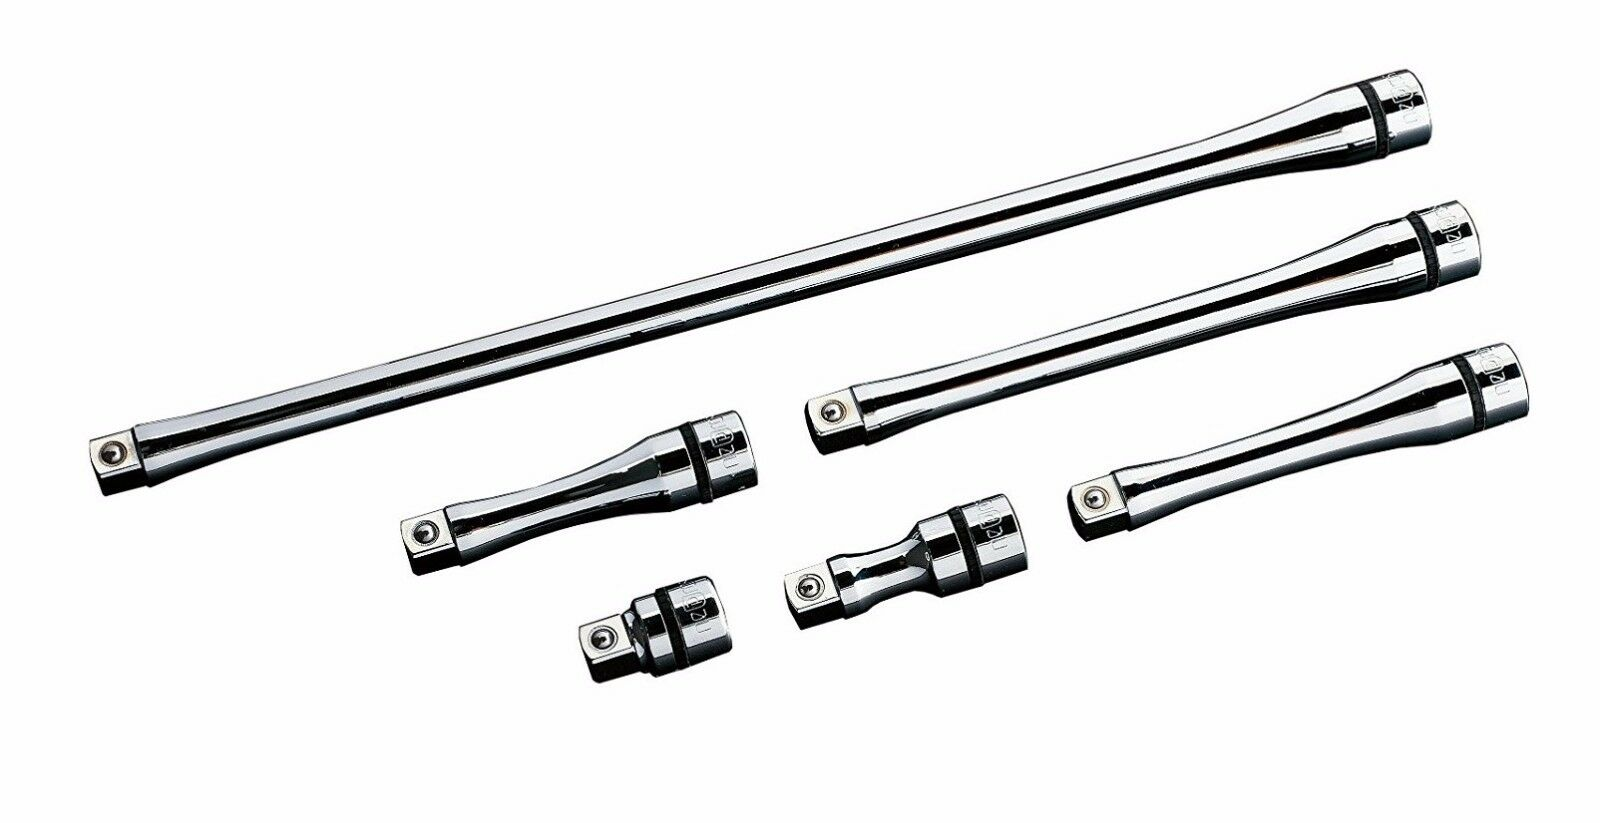 KTC-NEPROS / 3/8 INCH EXTENSION BAR SET 6 PCS / NTBE306 / MADE IN JAPAN